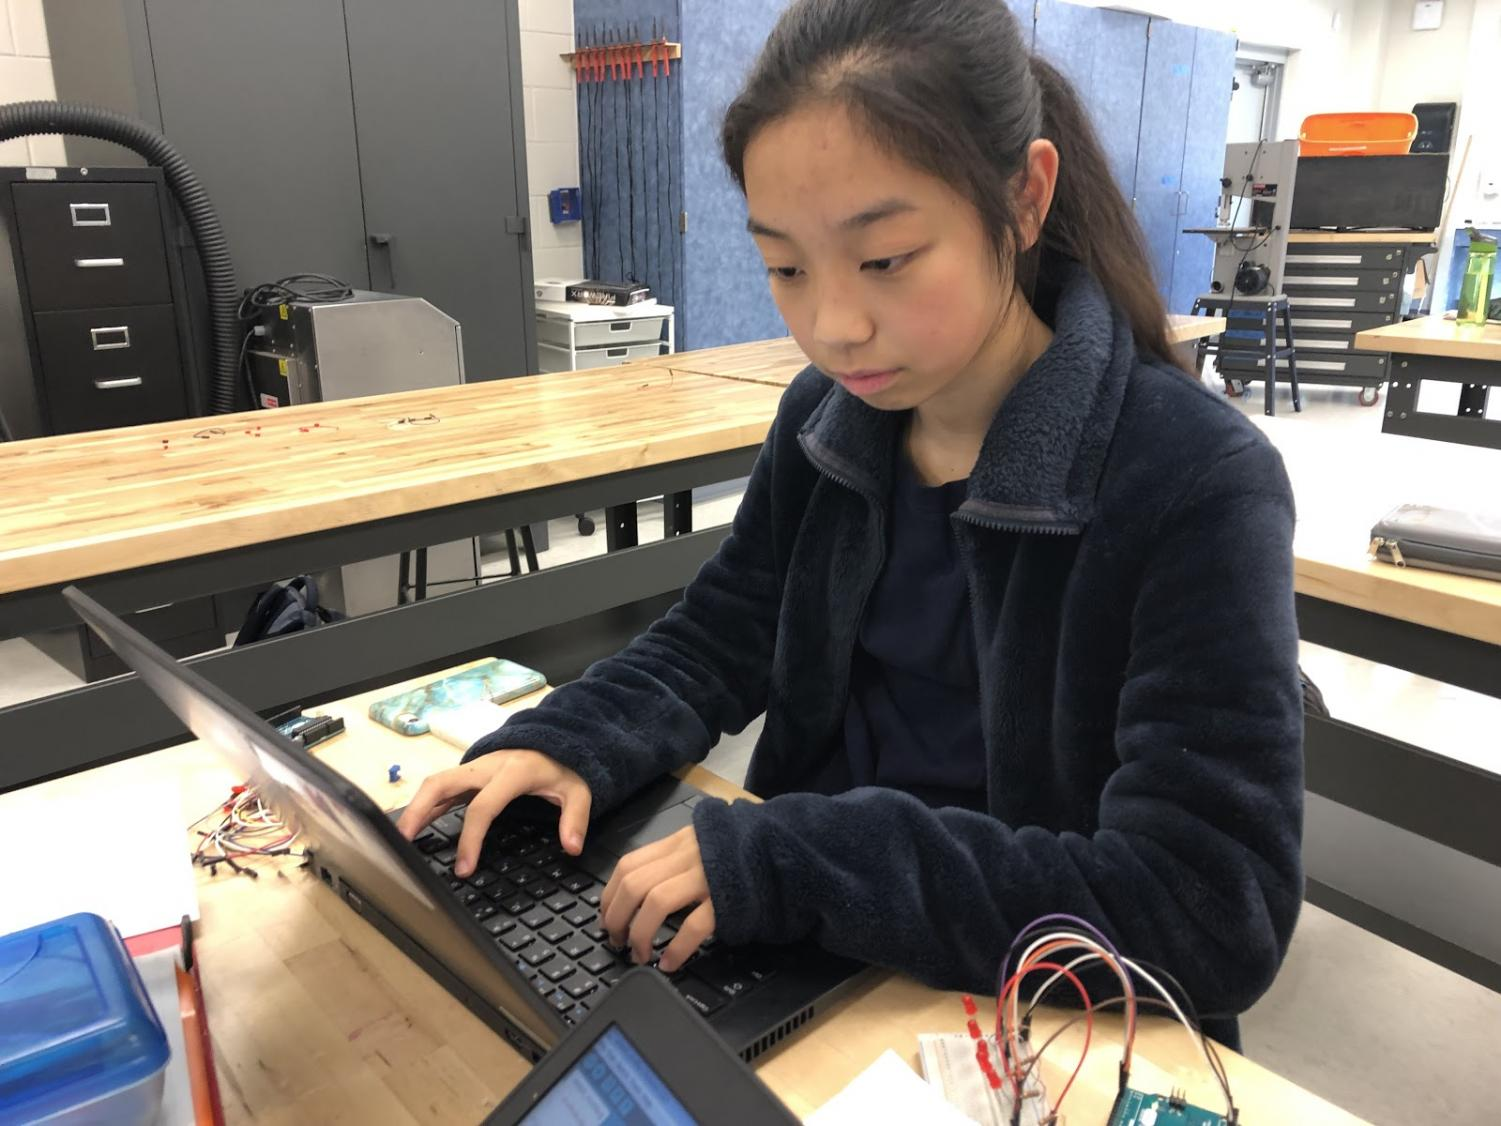 Freshman Joanna Cheng programming with an Arduino microcontroller during tech class at TJ. She was initially having difficulty trying to code a certain lab but quickly figured out the solution through determination.